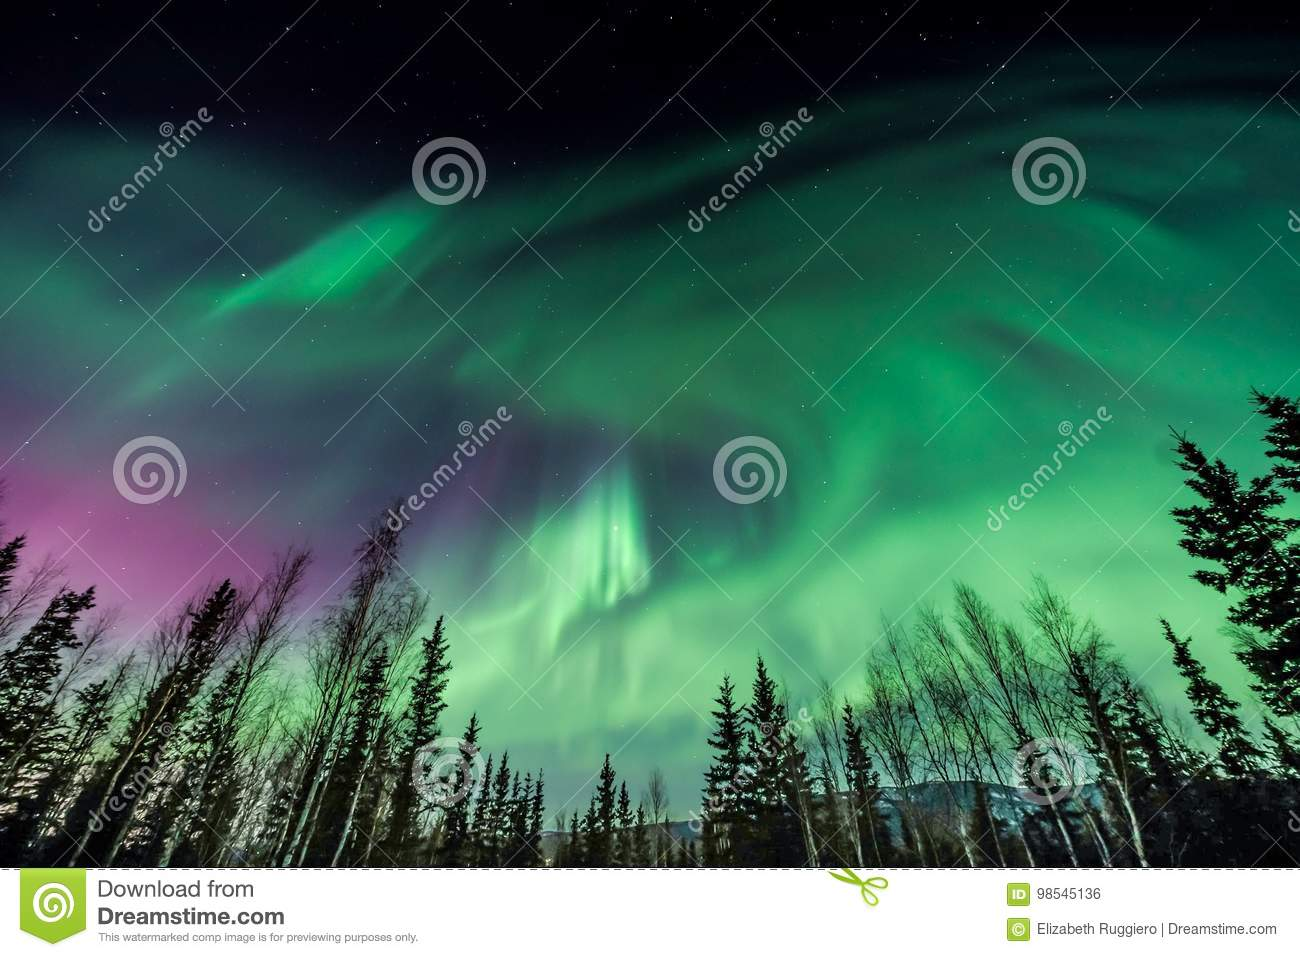 Purple and green Aurora borealis swirling over silhouetted trees in Alaska